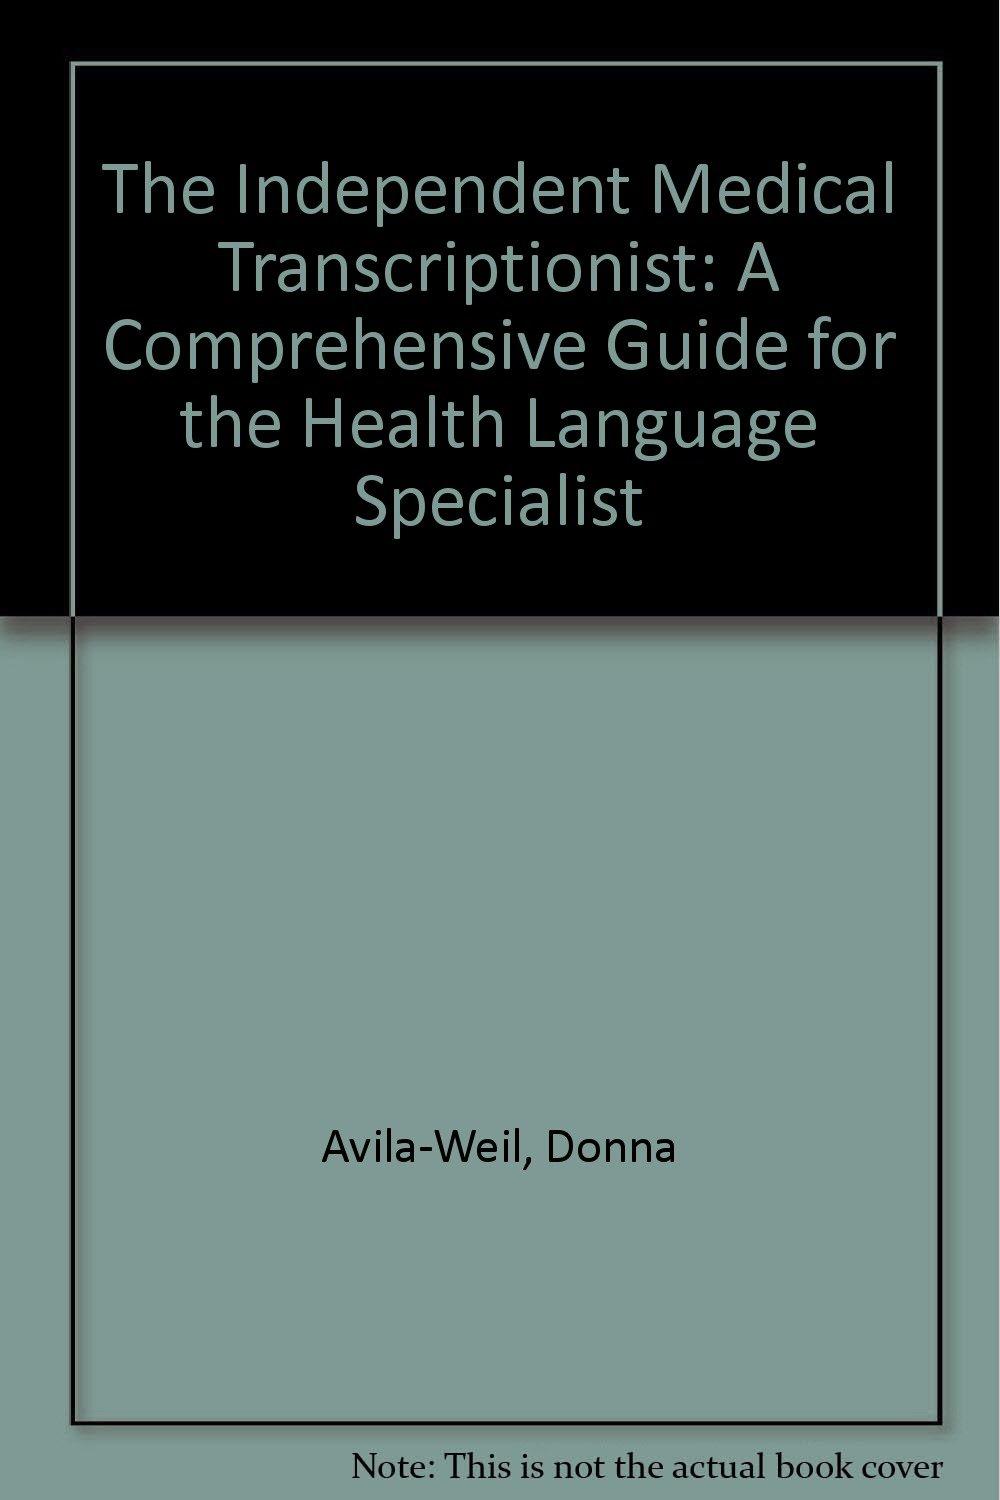 The Independent Medical Transcriptionist: A Comprehensive Guide for the Health Language Specialist